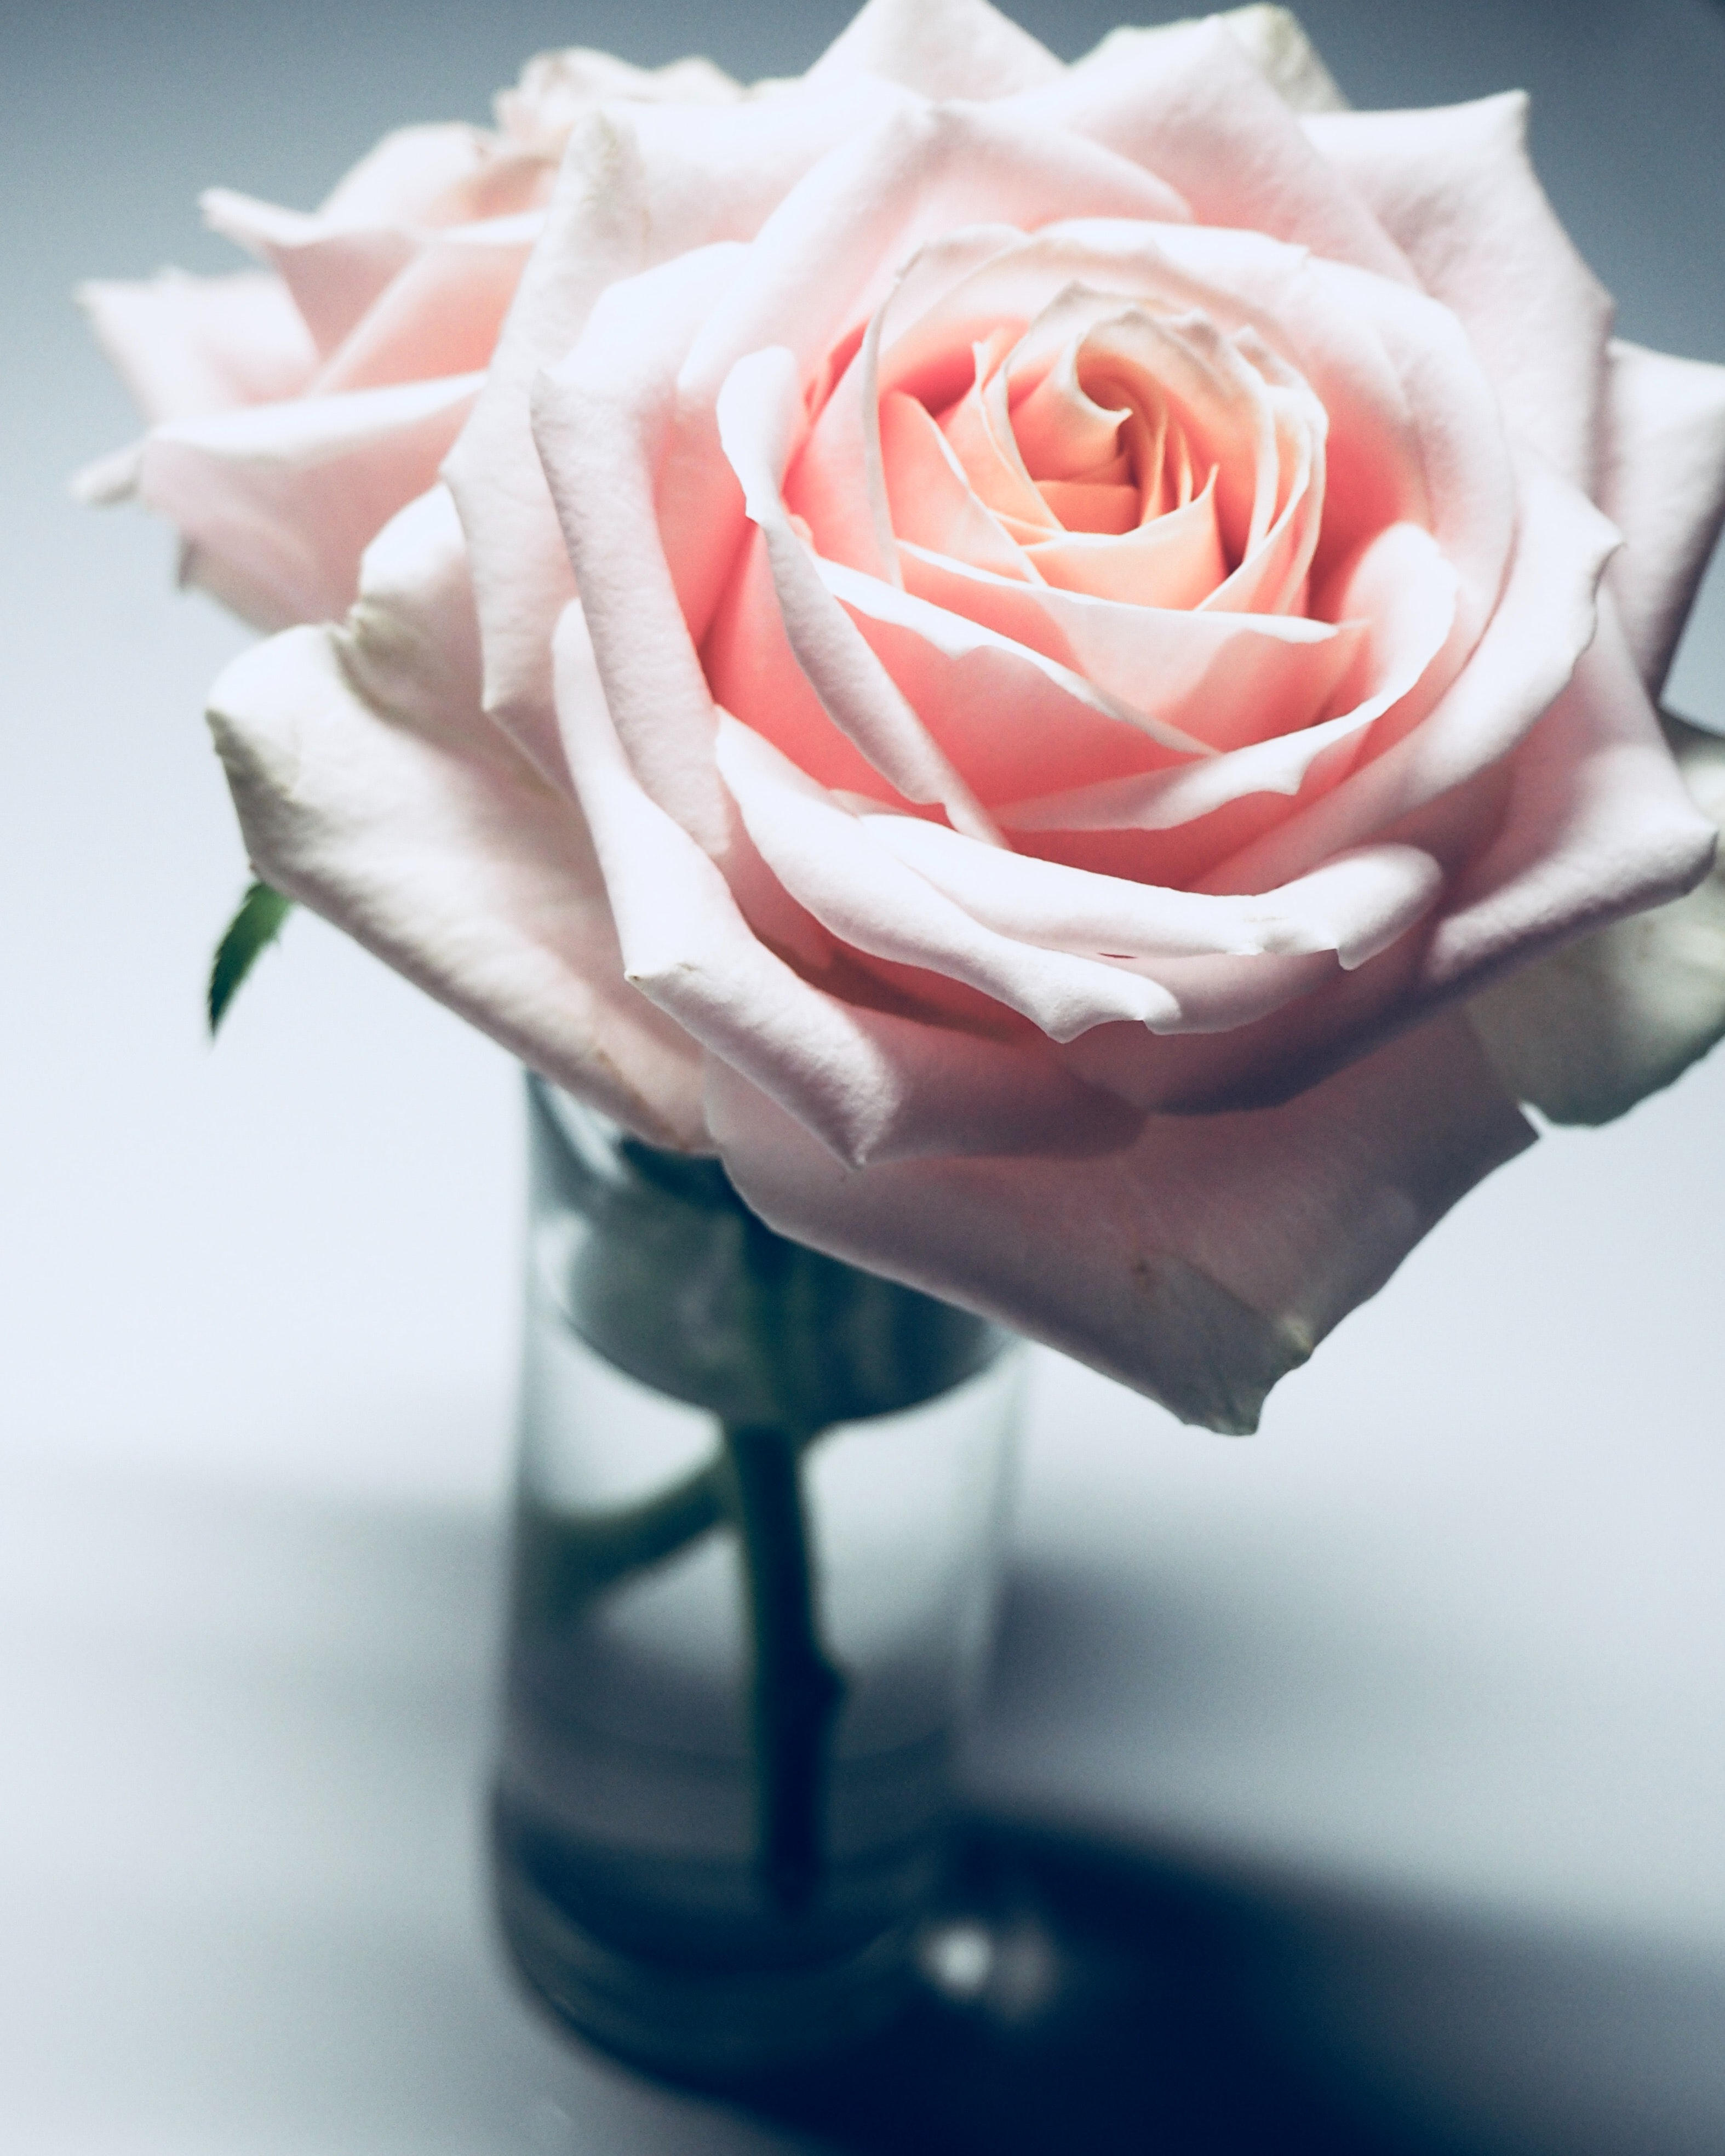 Closeup Photography Of Pink Rose Flower In Clear Glass Vase